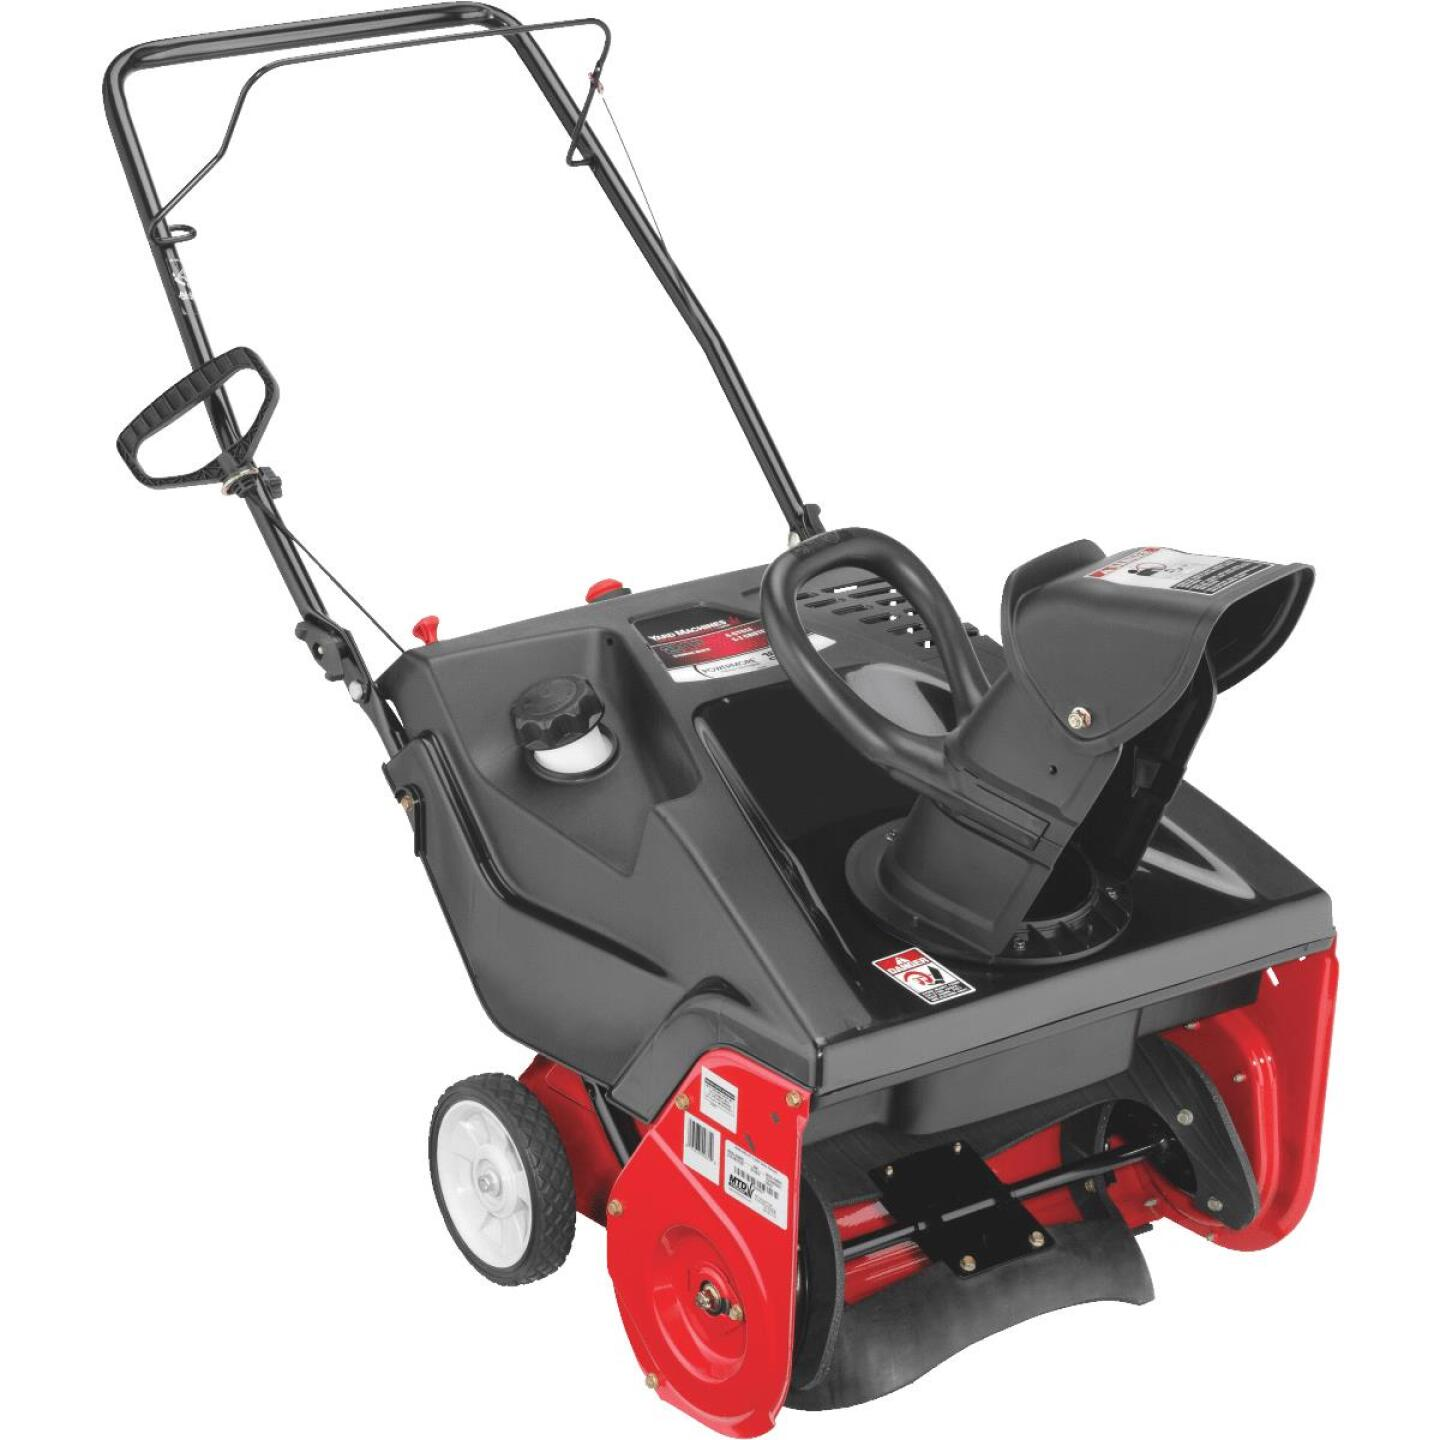 Yard Machines 21 In. 123cc Single-Stage Gas Snow Blower Image 1